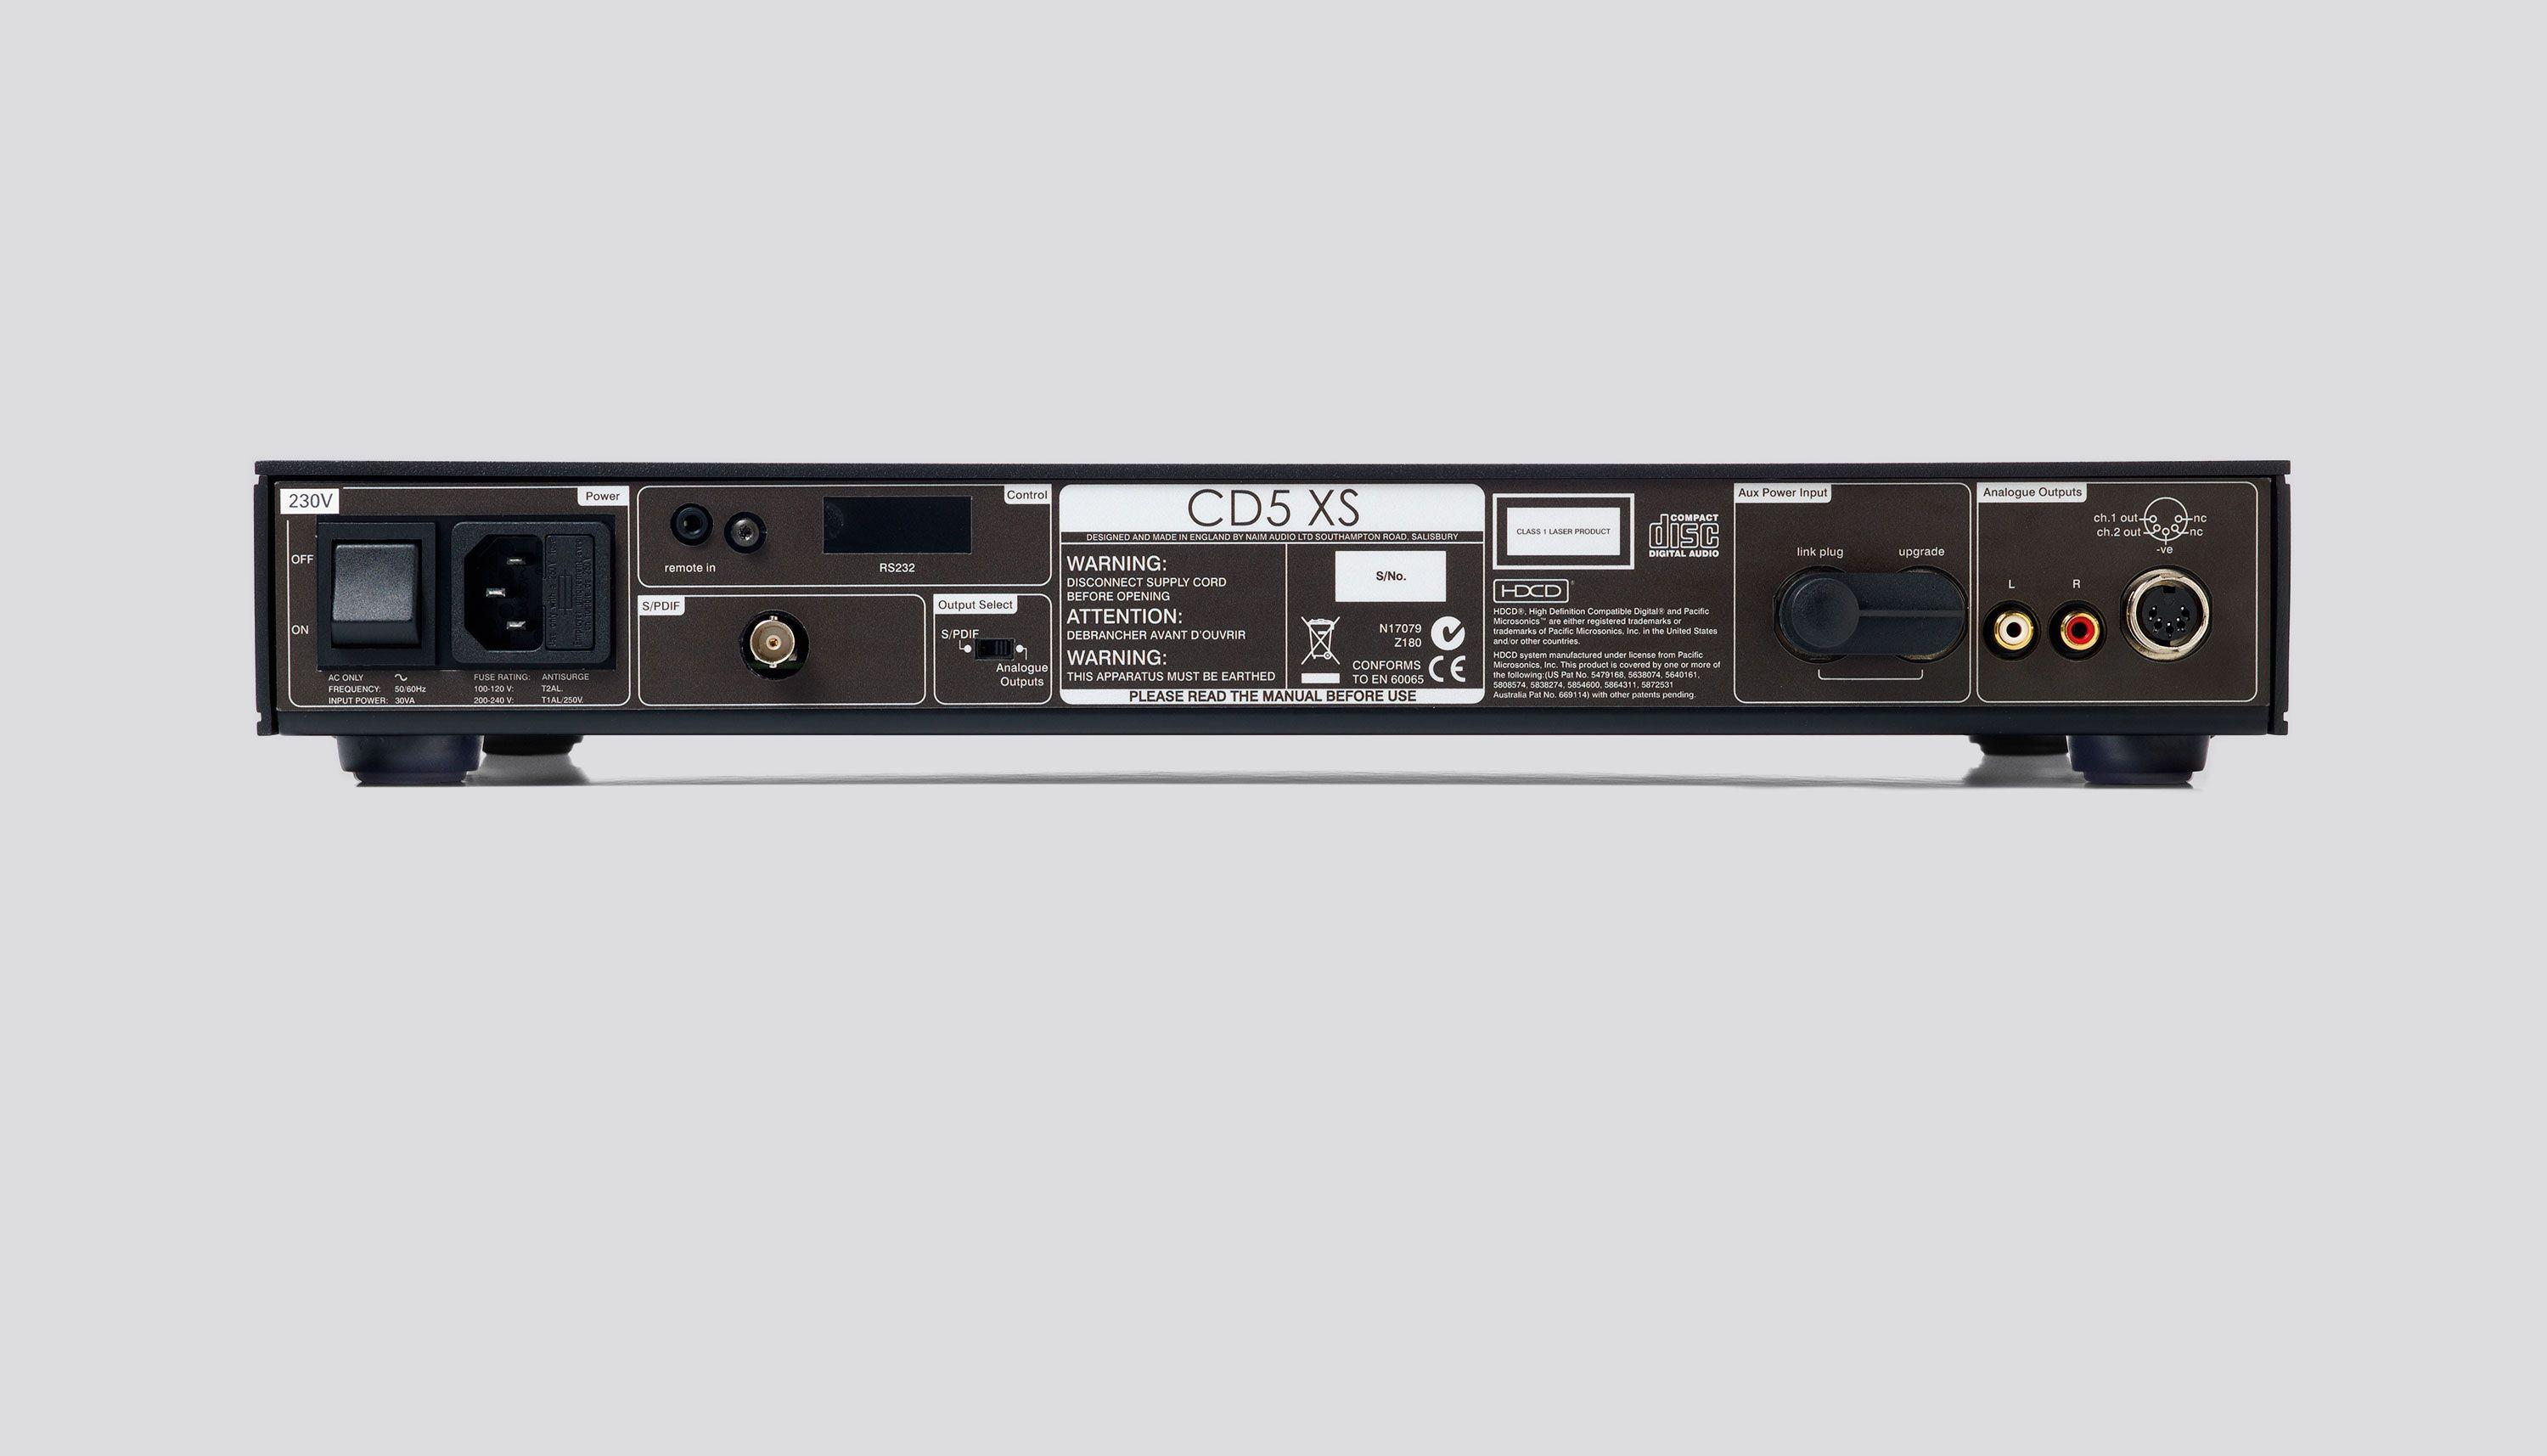 CD5 XS cd player